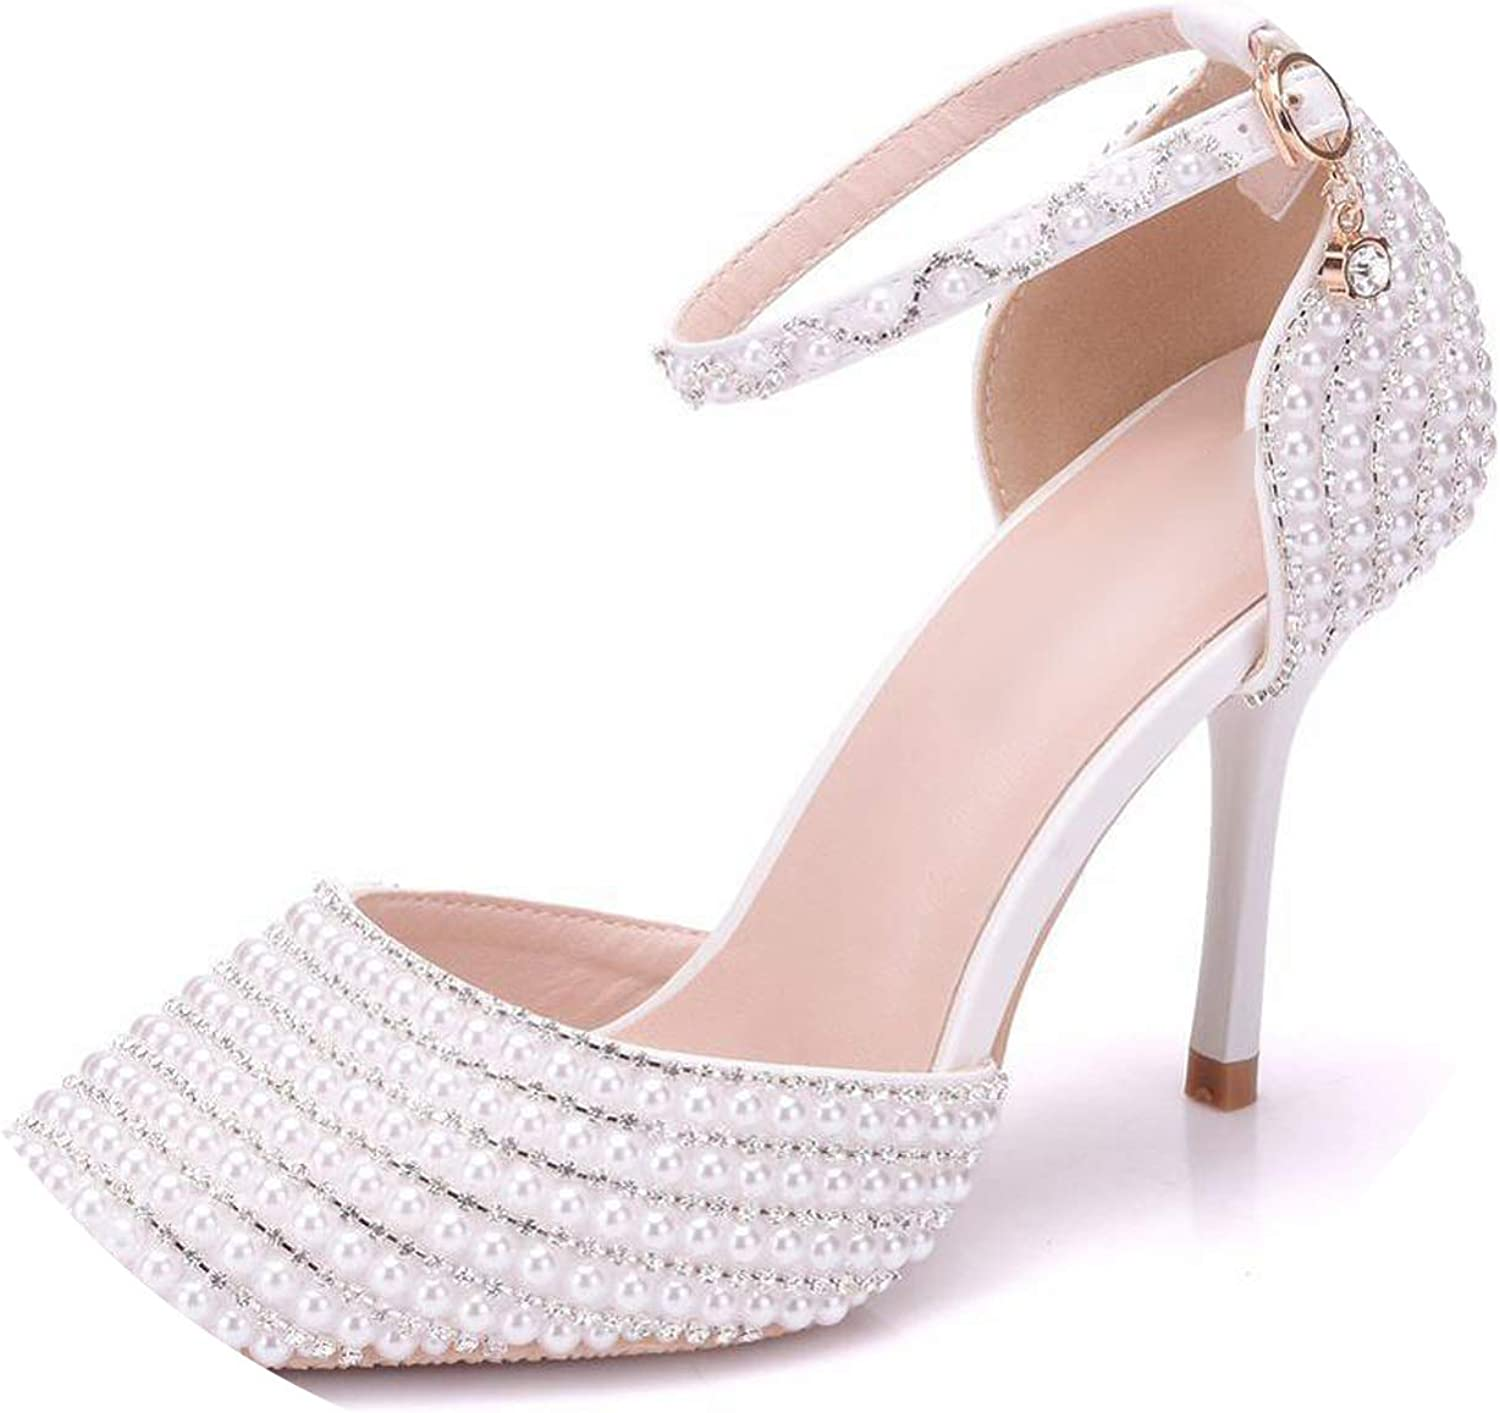 Sunny Doll 2019 Women High Heels Pump Pearl Heels Wedding Party shoes Ankle Strap Crystal Stilleto Ladies shoes